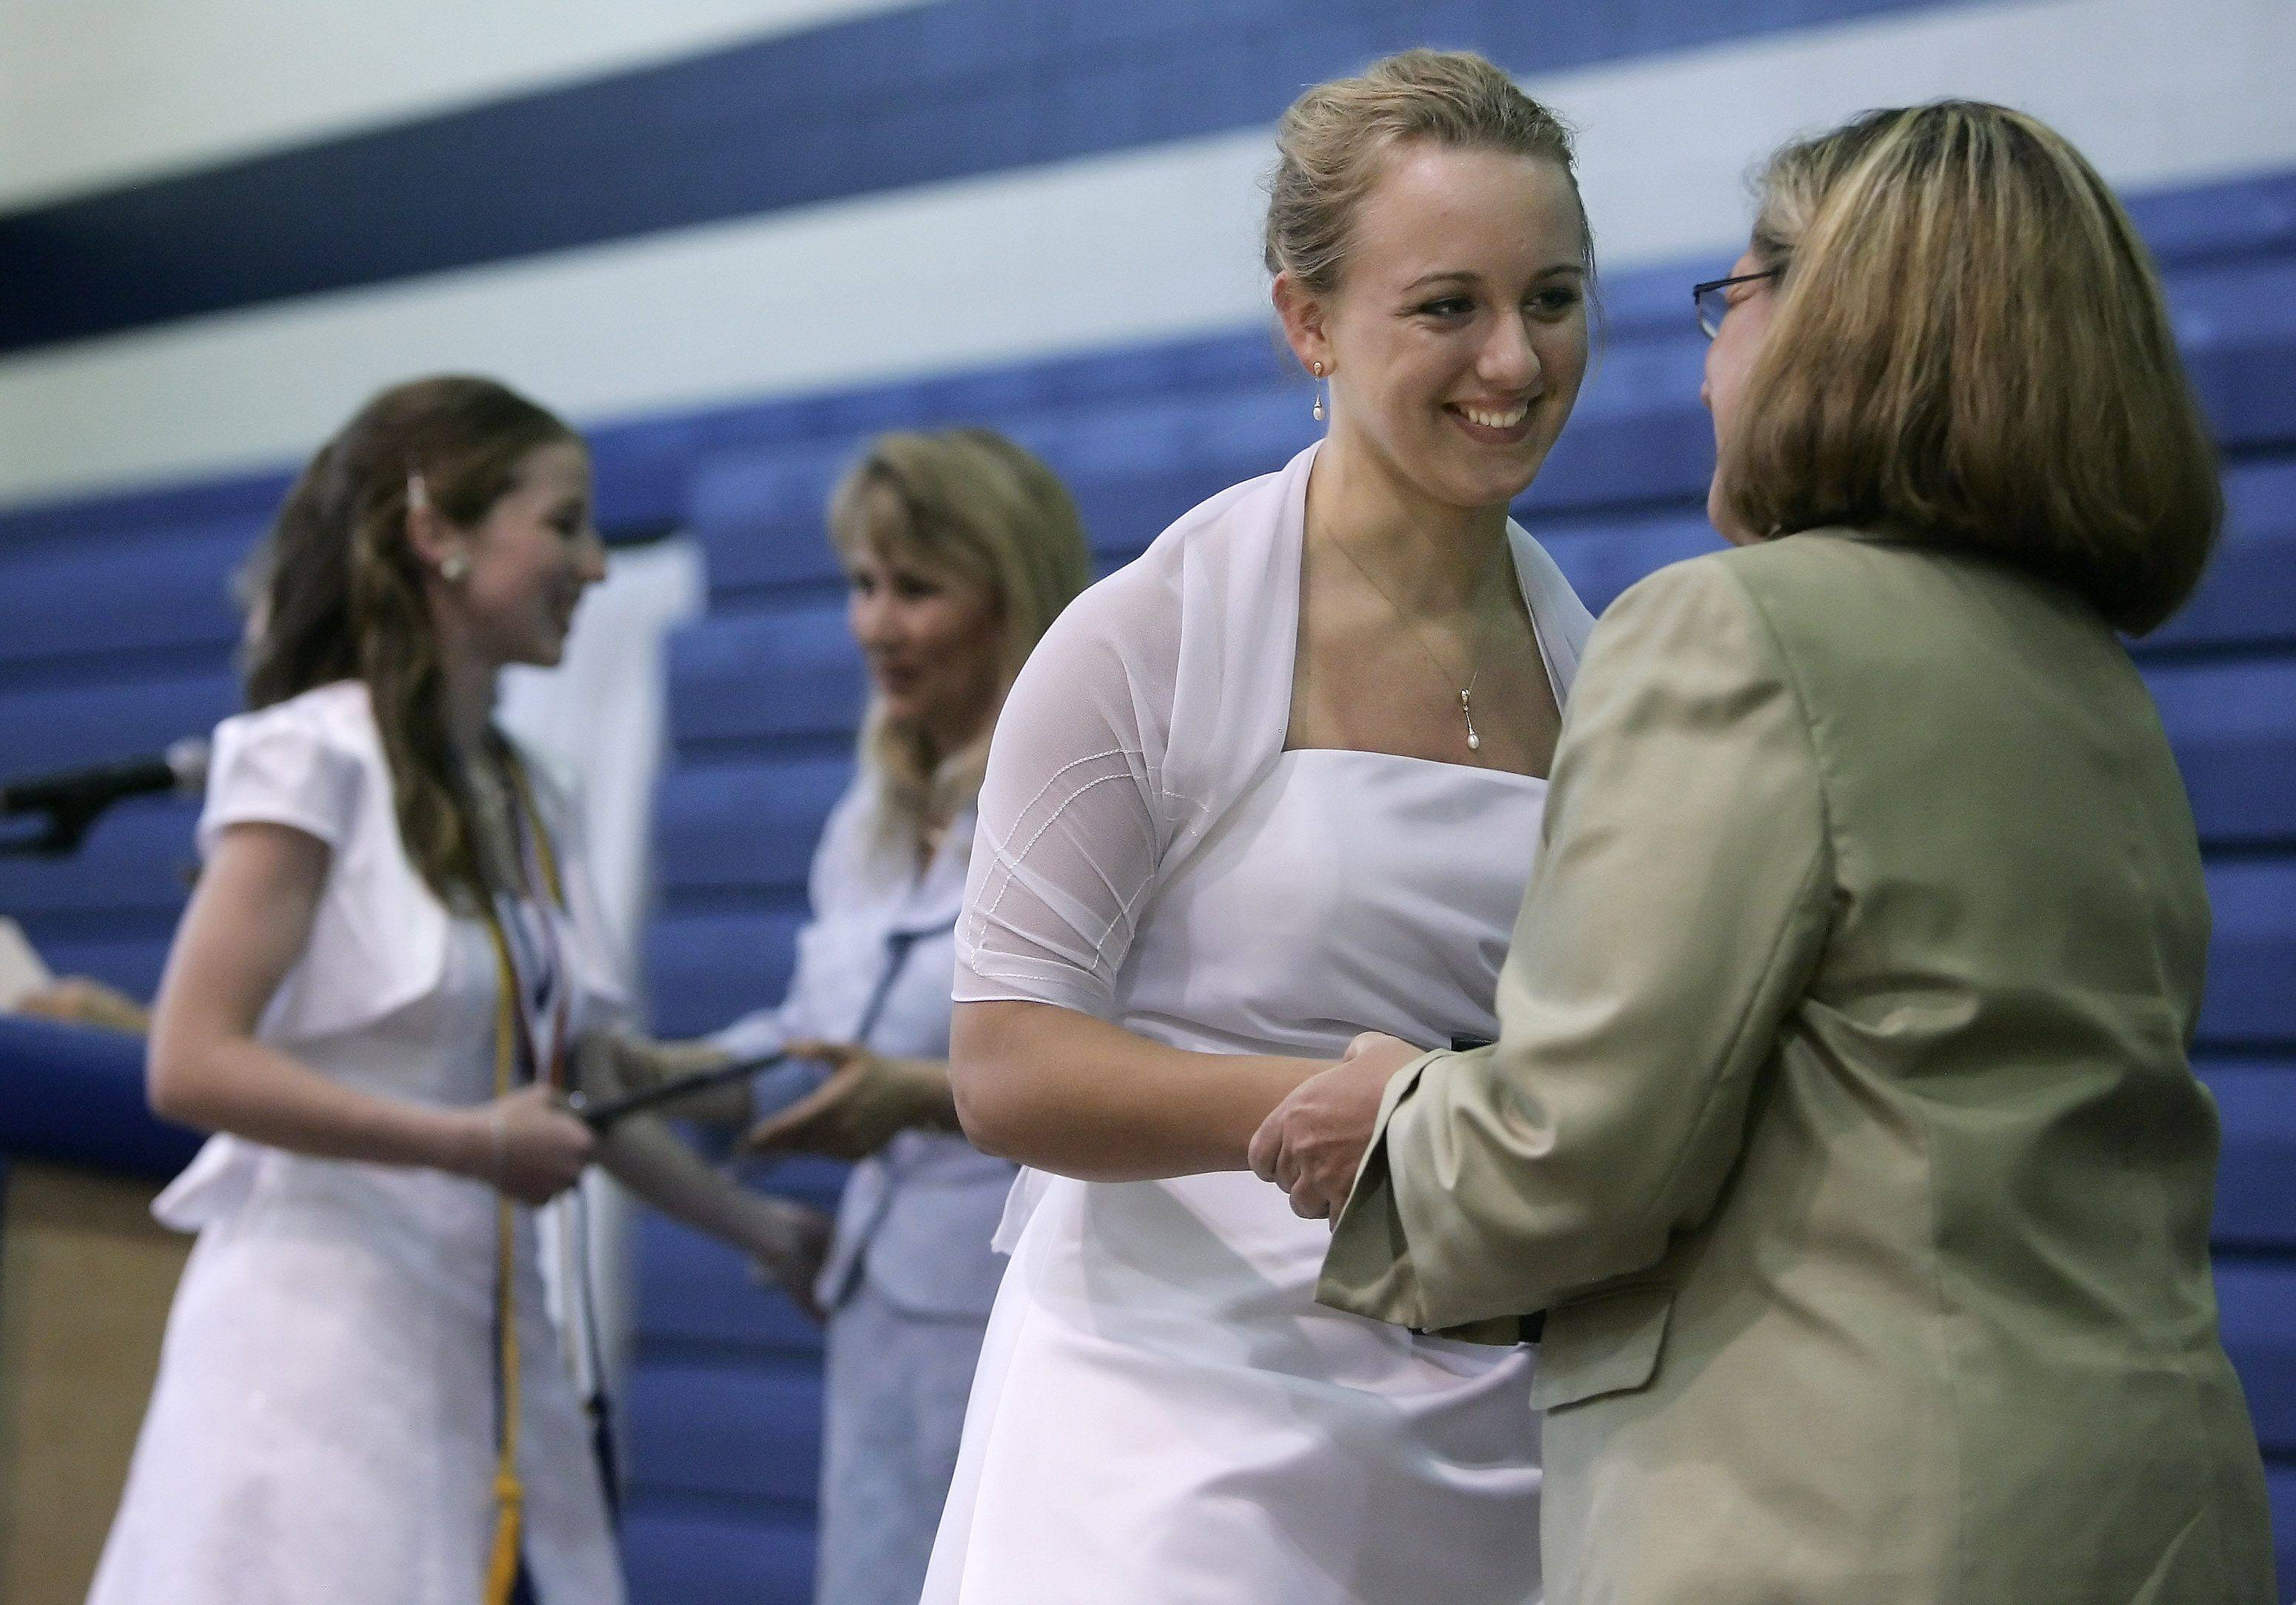 Mary Frelk shakes hands with Mary Keenley, Head of School, after receiving her diploma during The Willows Academy commencement exercises Sunday in Des Plaines. In the back is Mary Gibson as she receives her diploma. The Class of 2011 consisted of 29 graduating seniors.